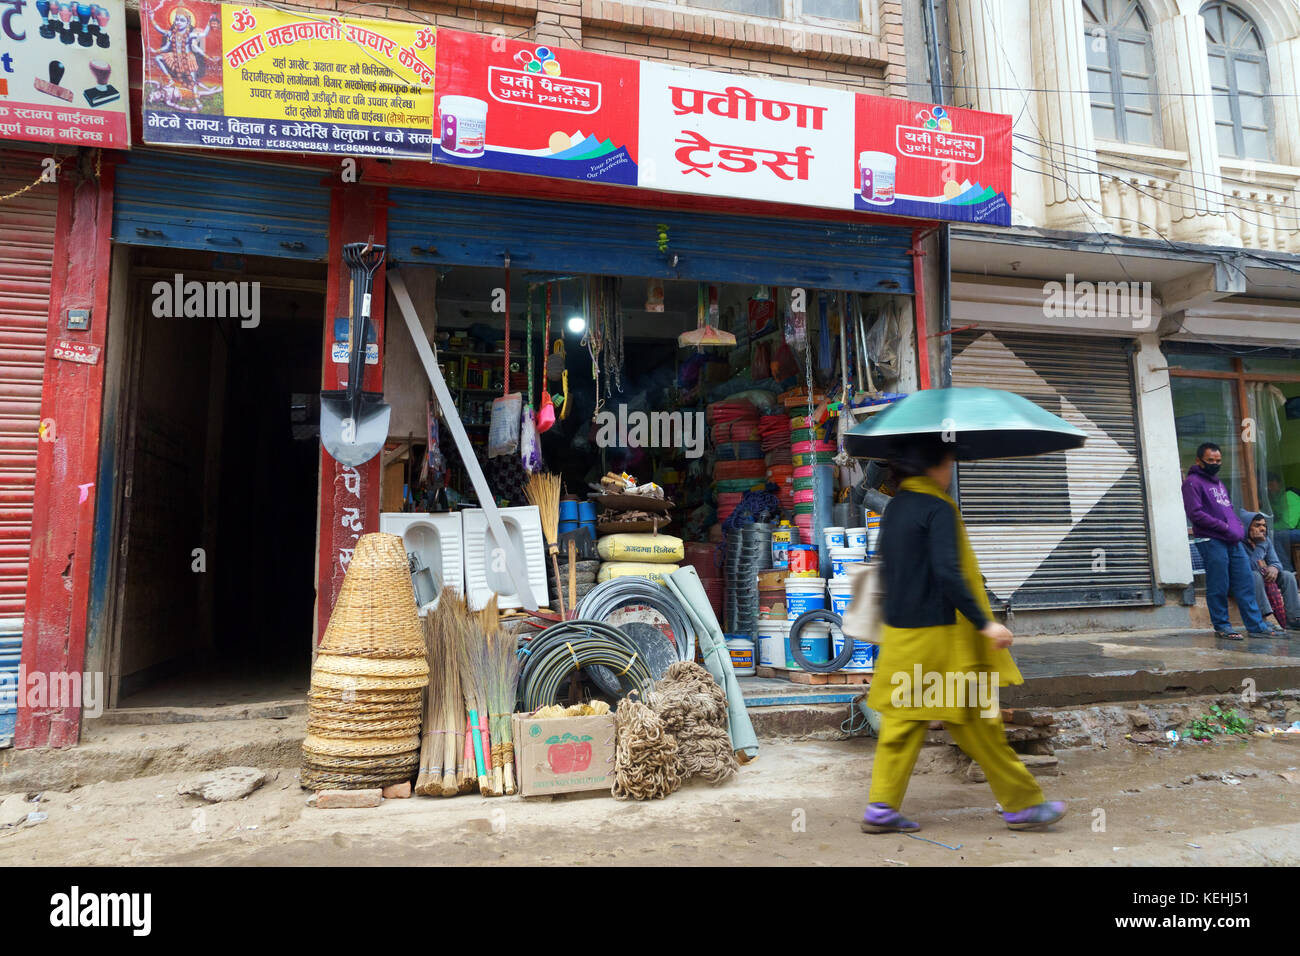 Female pedestrian with an umbrella passing by a hardware store in Kathmandu, Nepal. - Stock Image